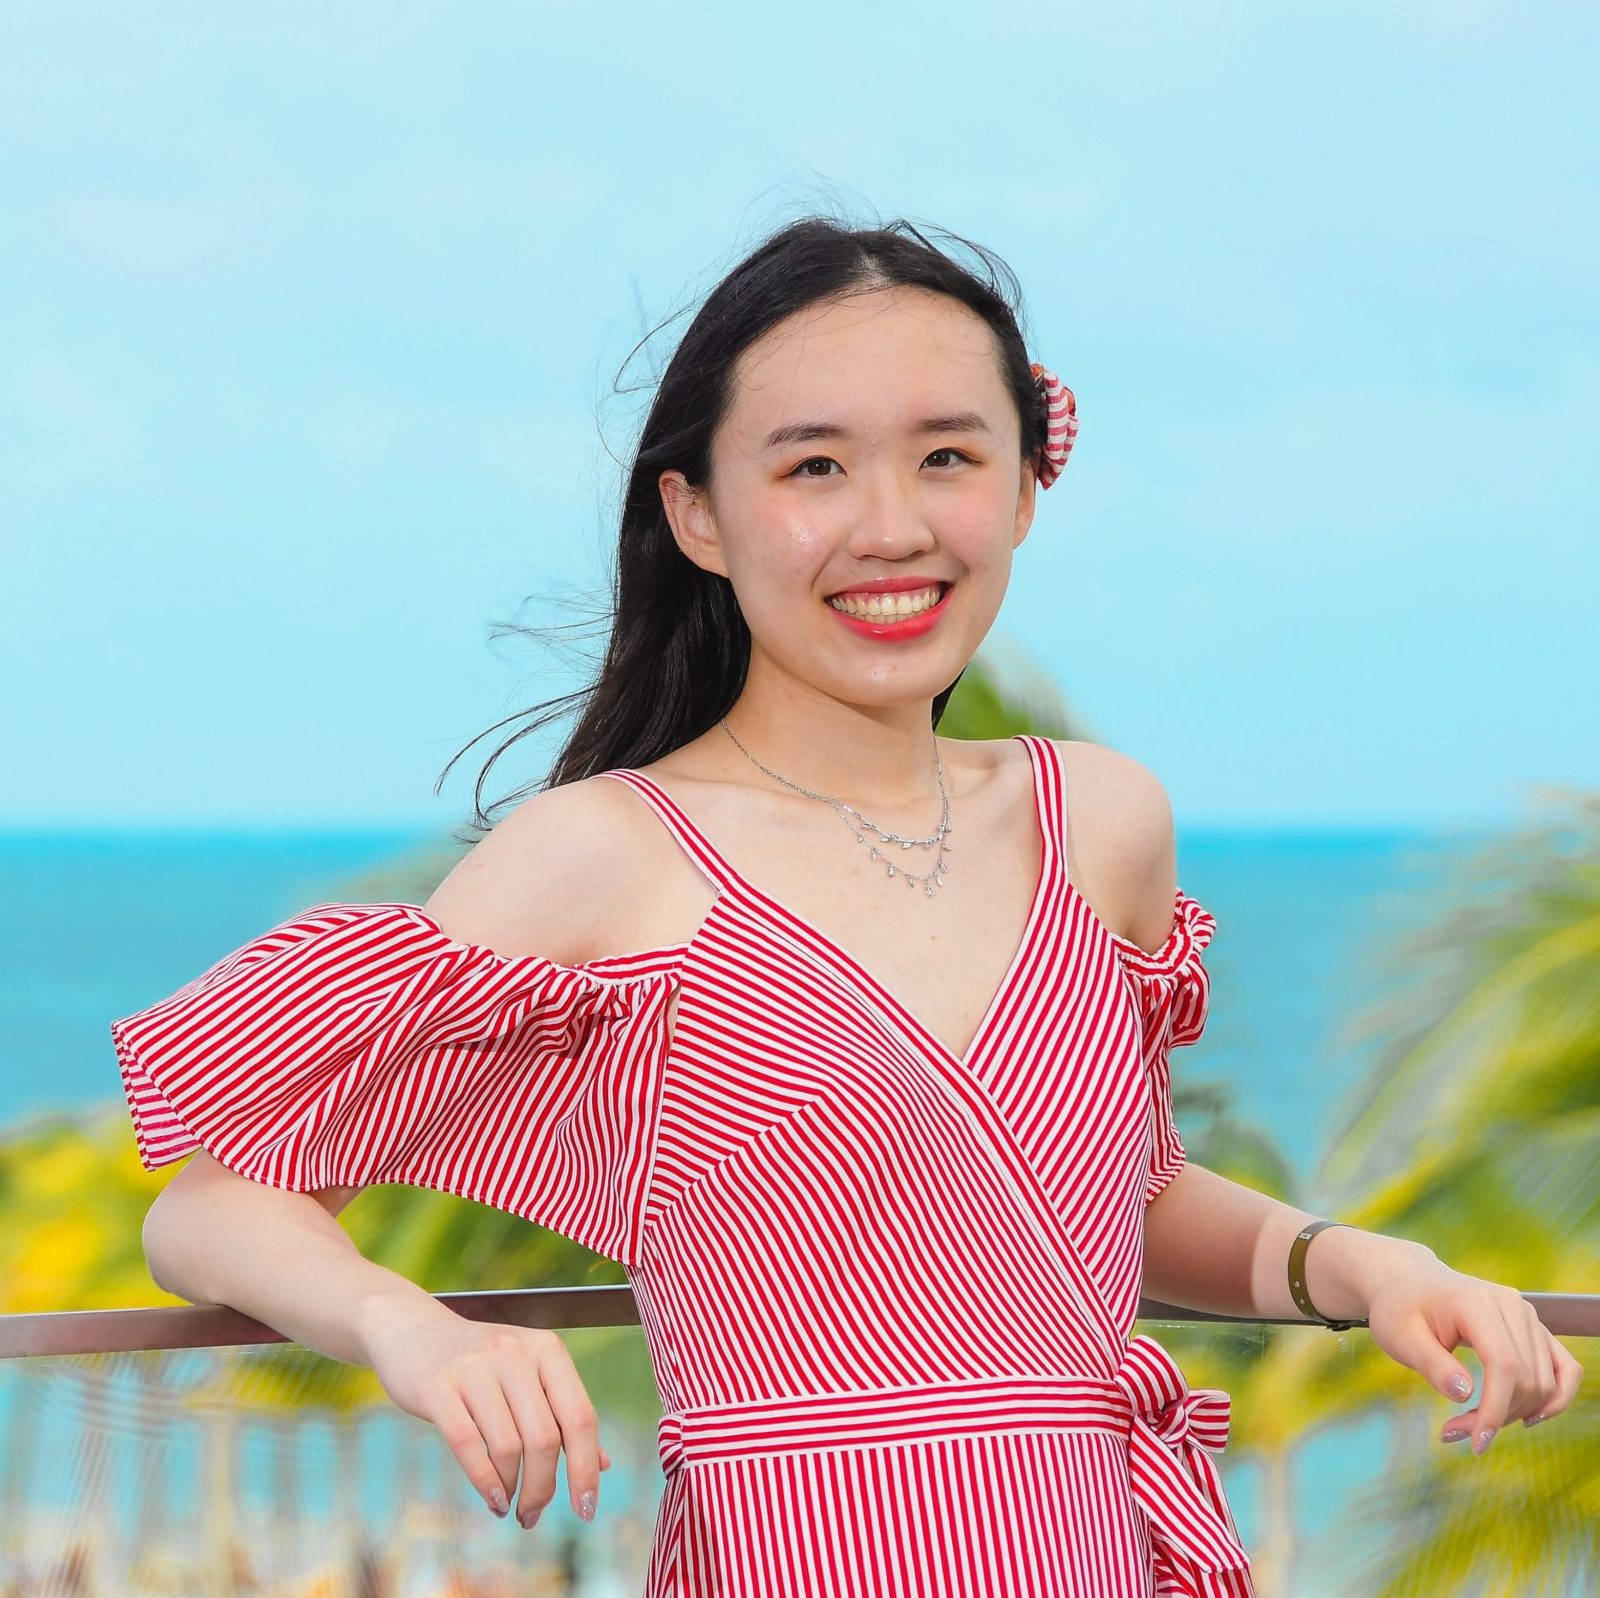 A smiling photo of Ocarina Zheng that links to a page about Babette and Ocarina's project.